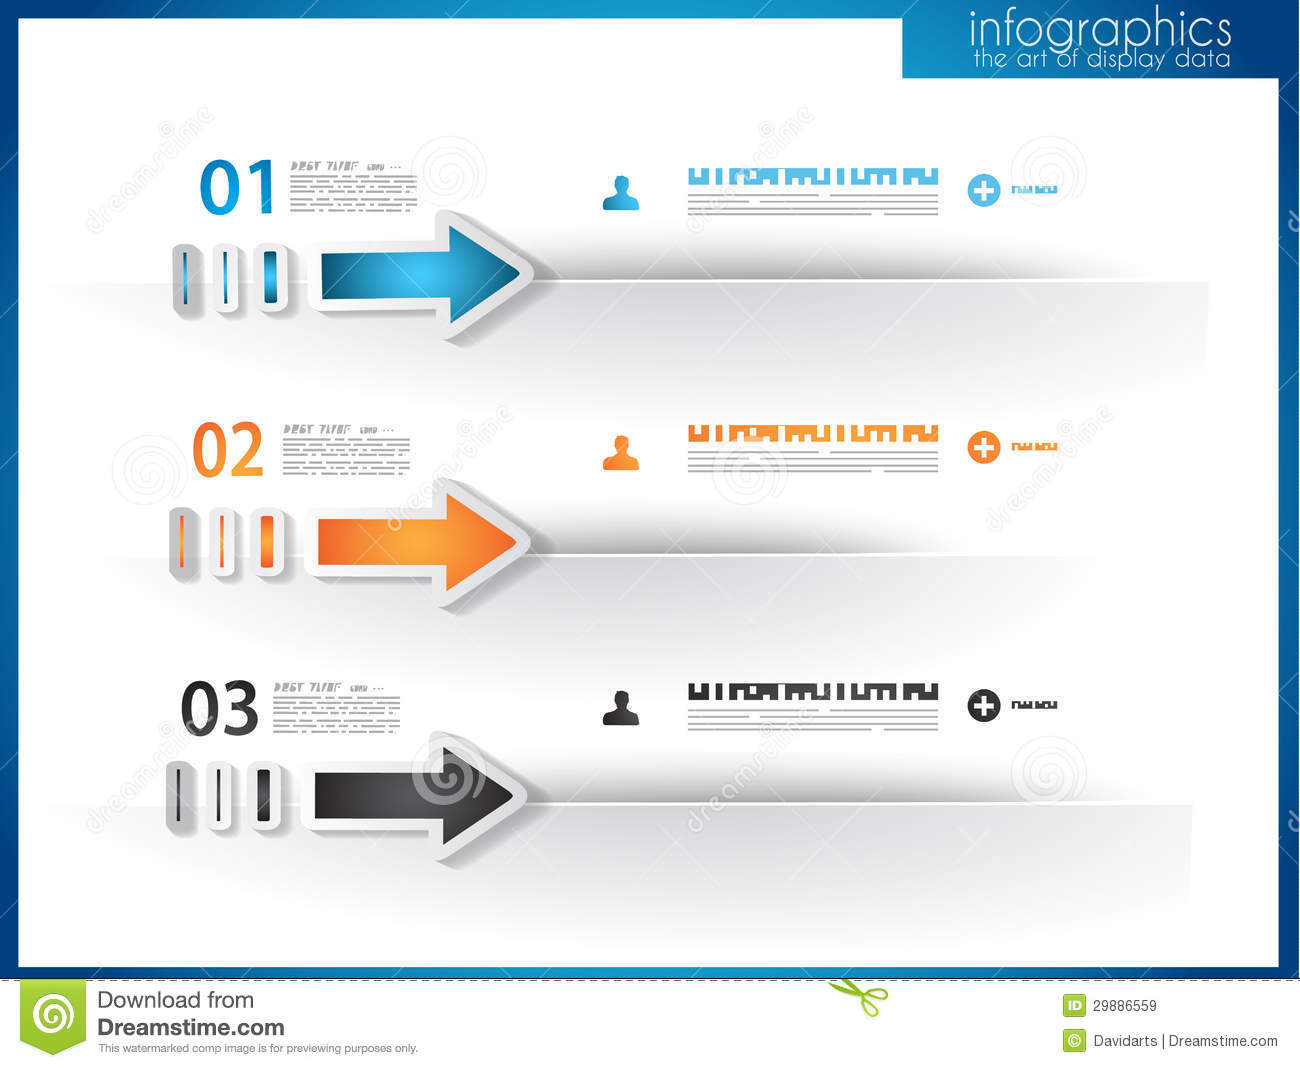 Infographic Template For Statistic Data Visualization. Royalty Free ...